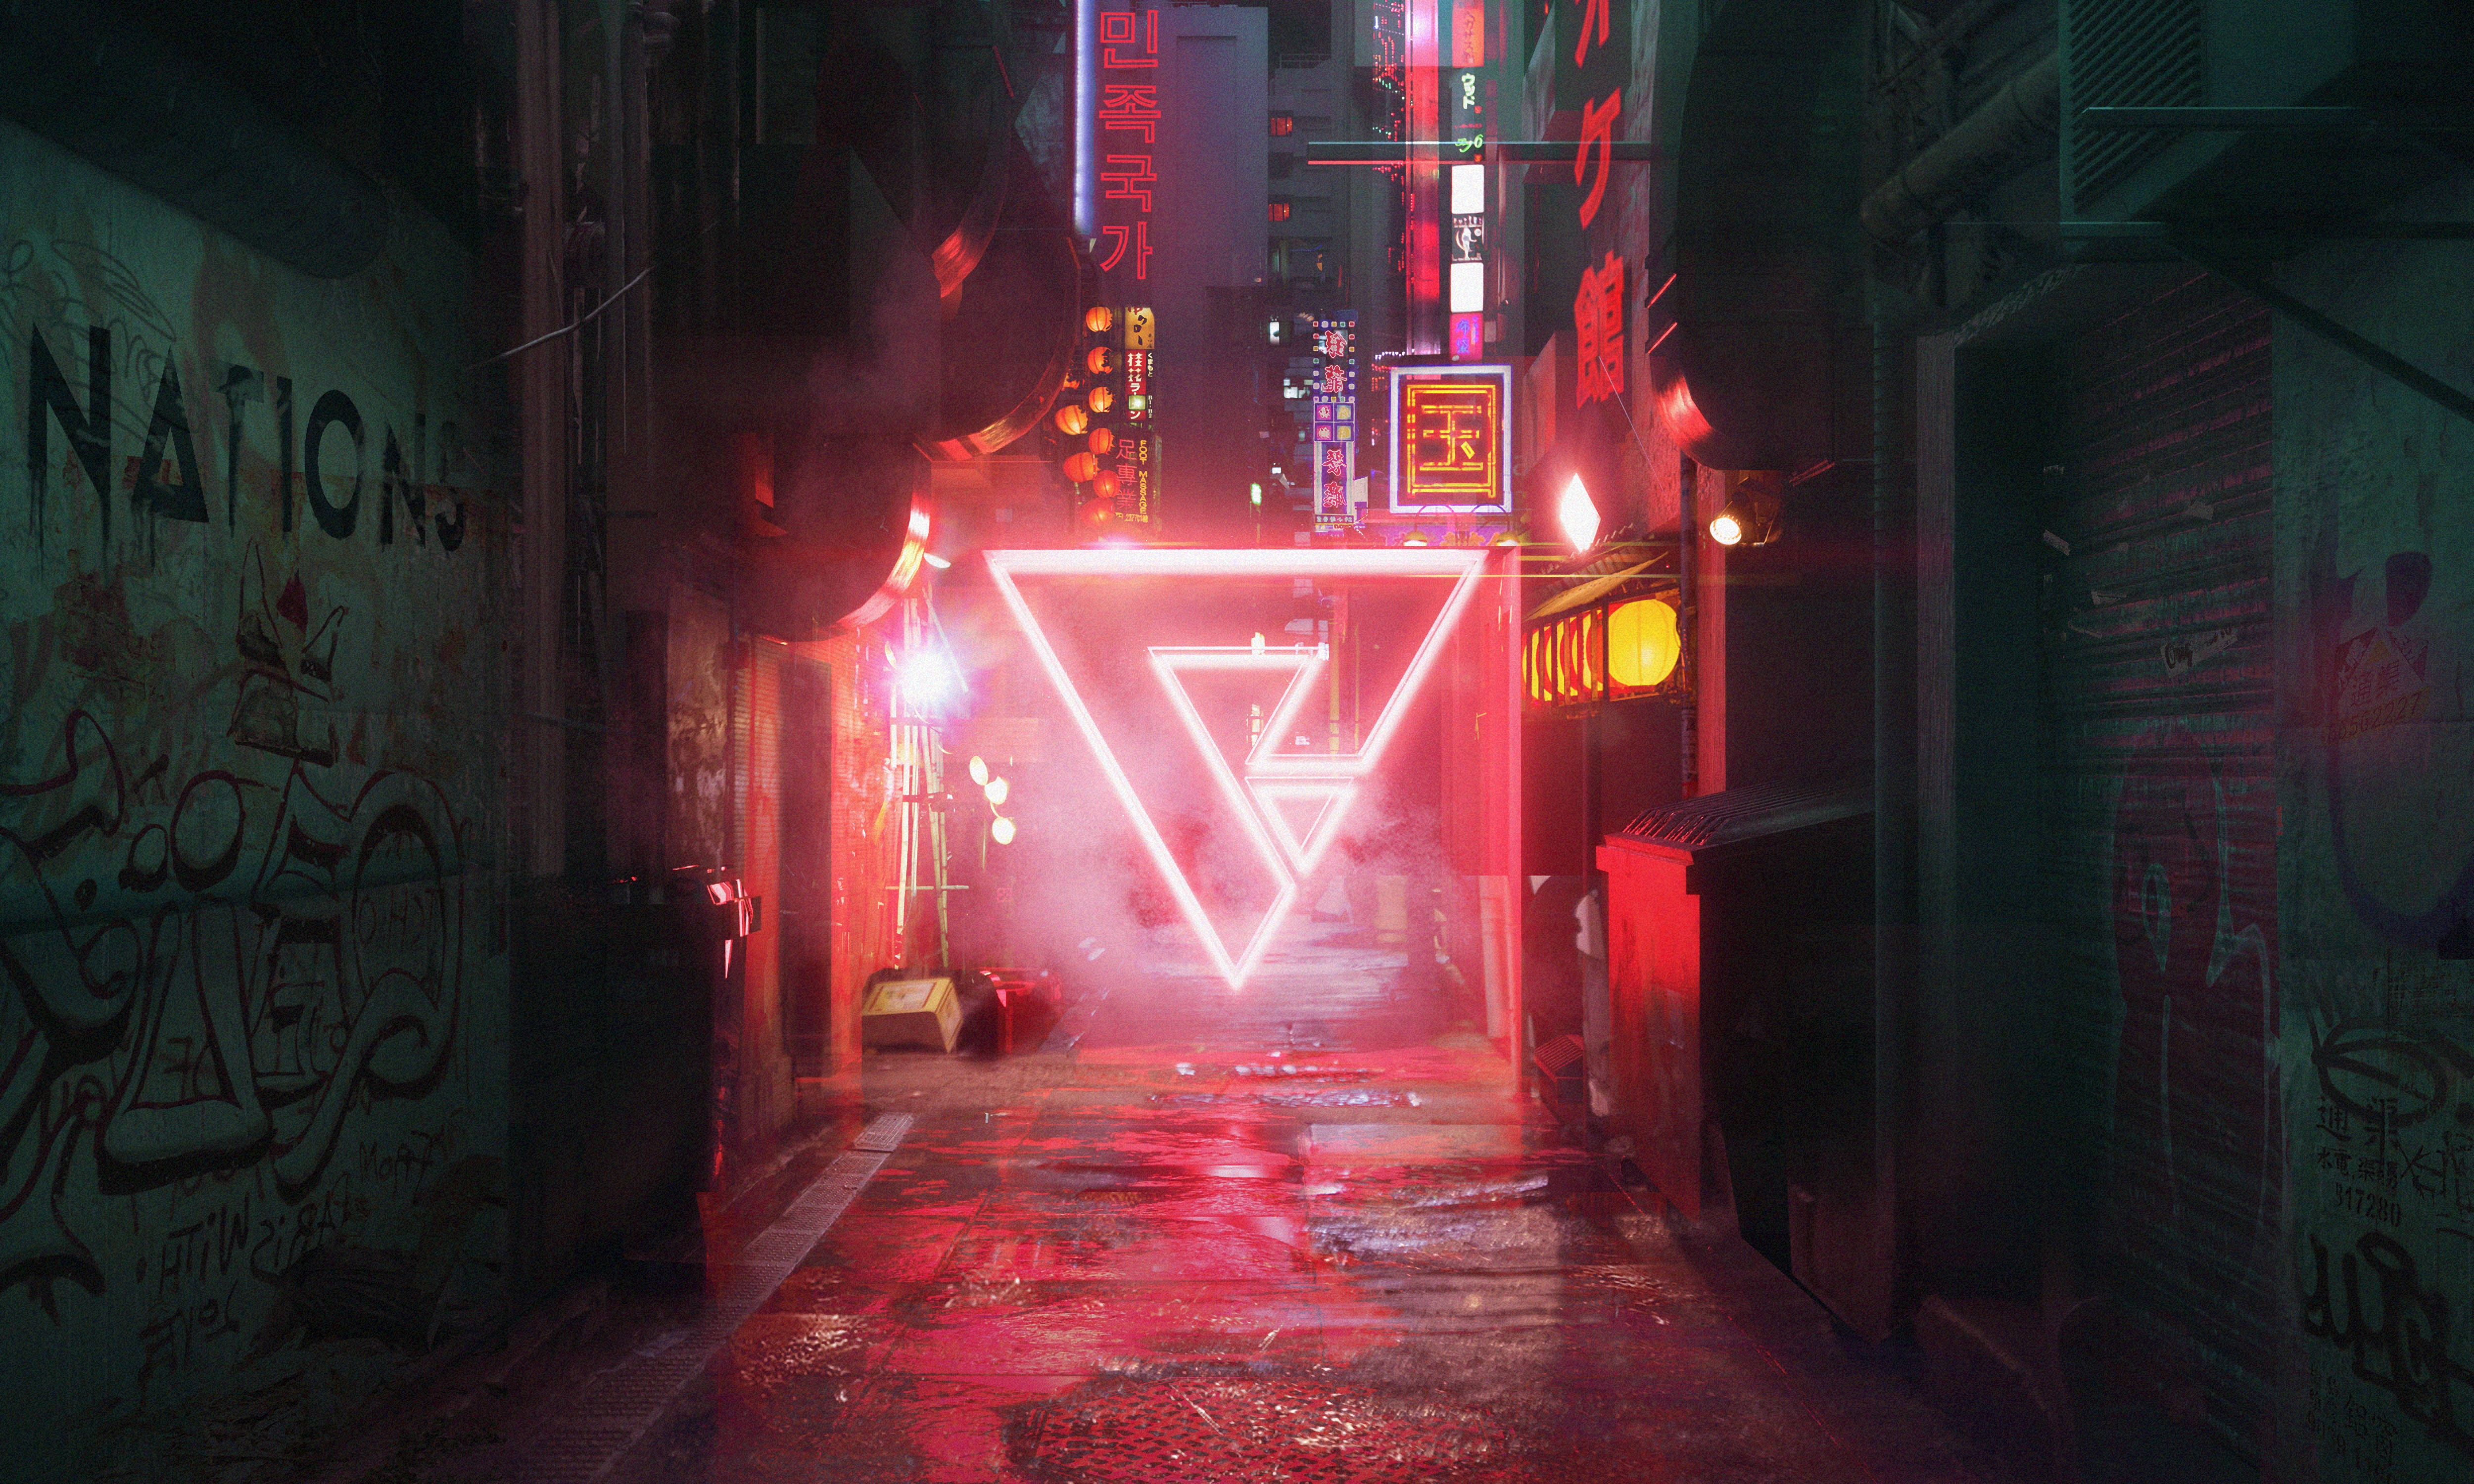 54996 download wallpaper Neon, Art, Cyberpunk, Street, Triangle screensavers and pictures for free